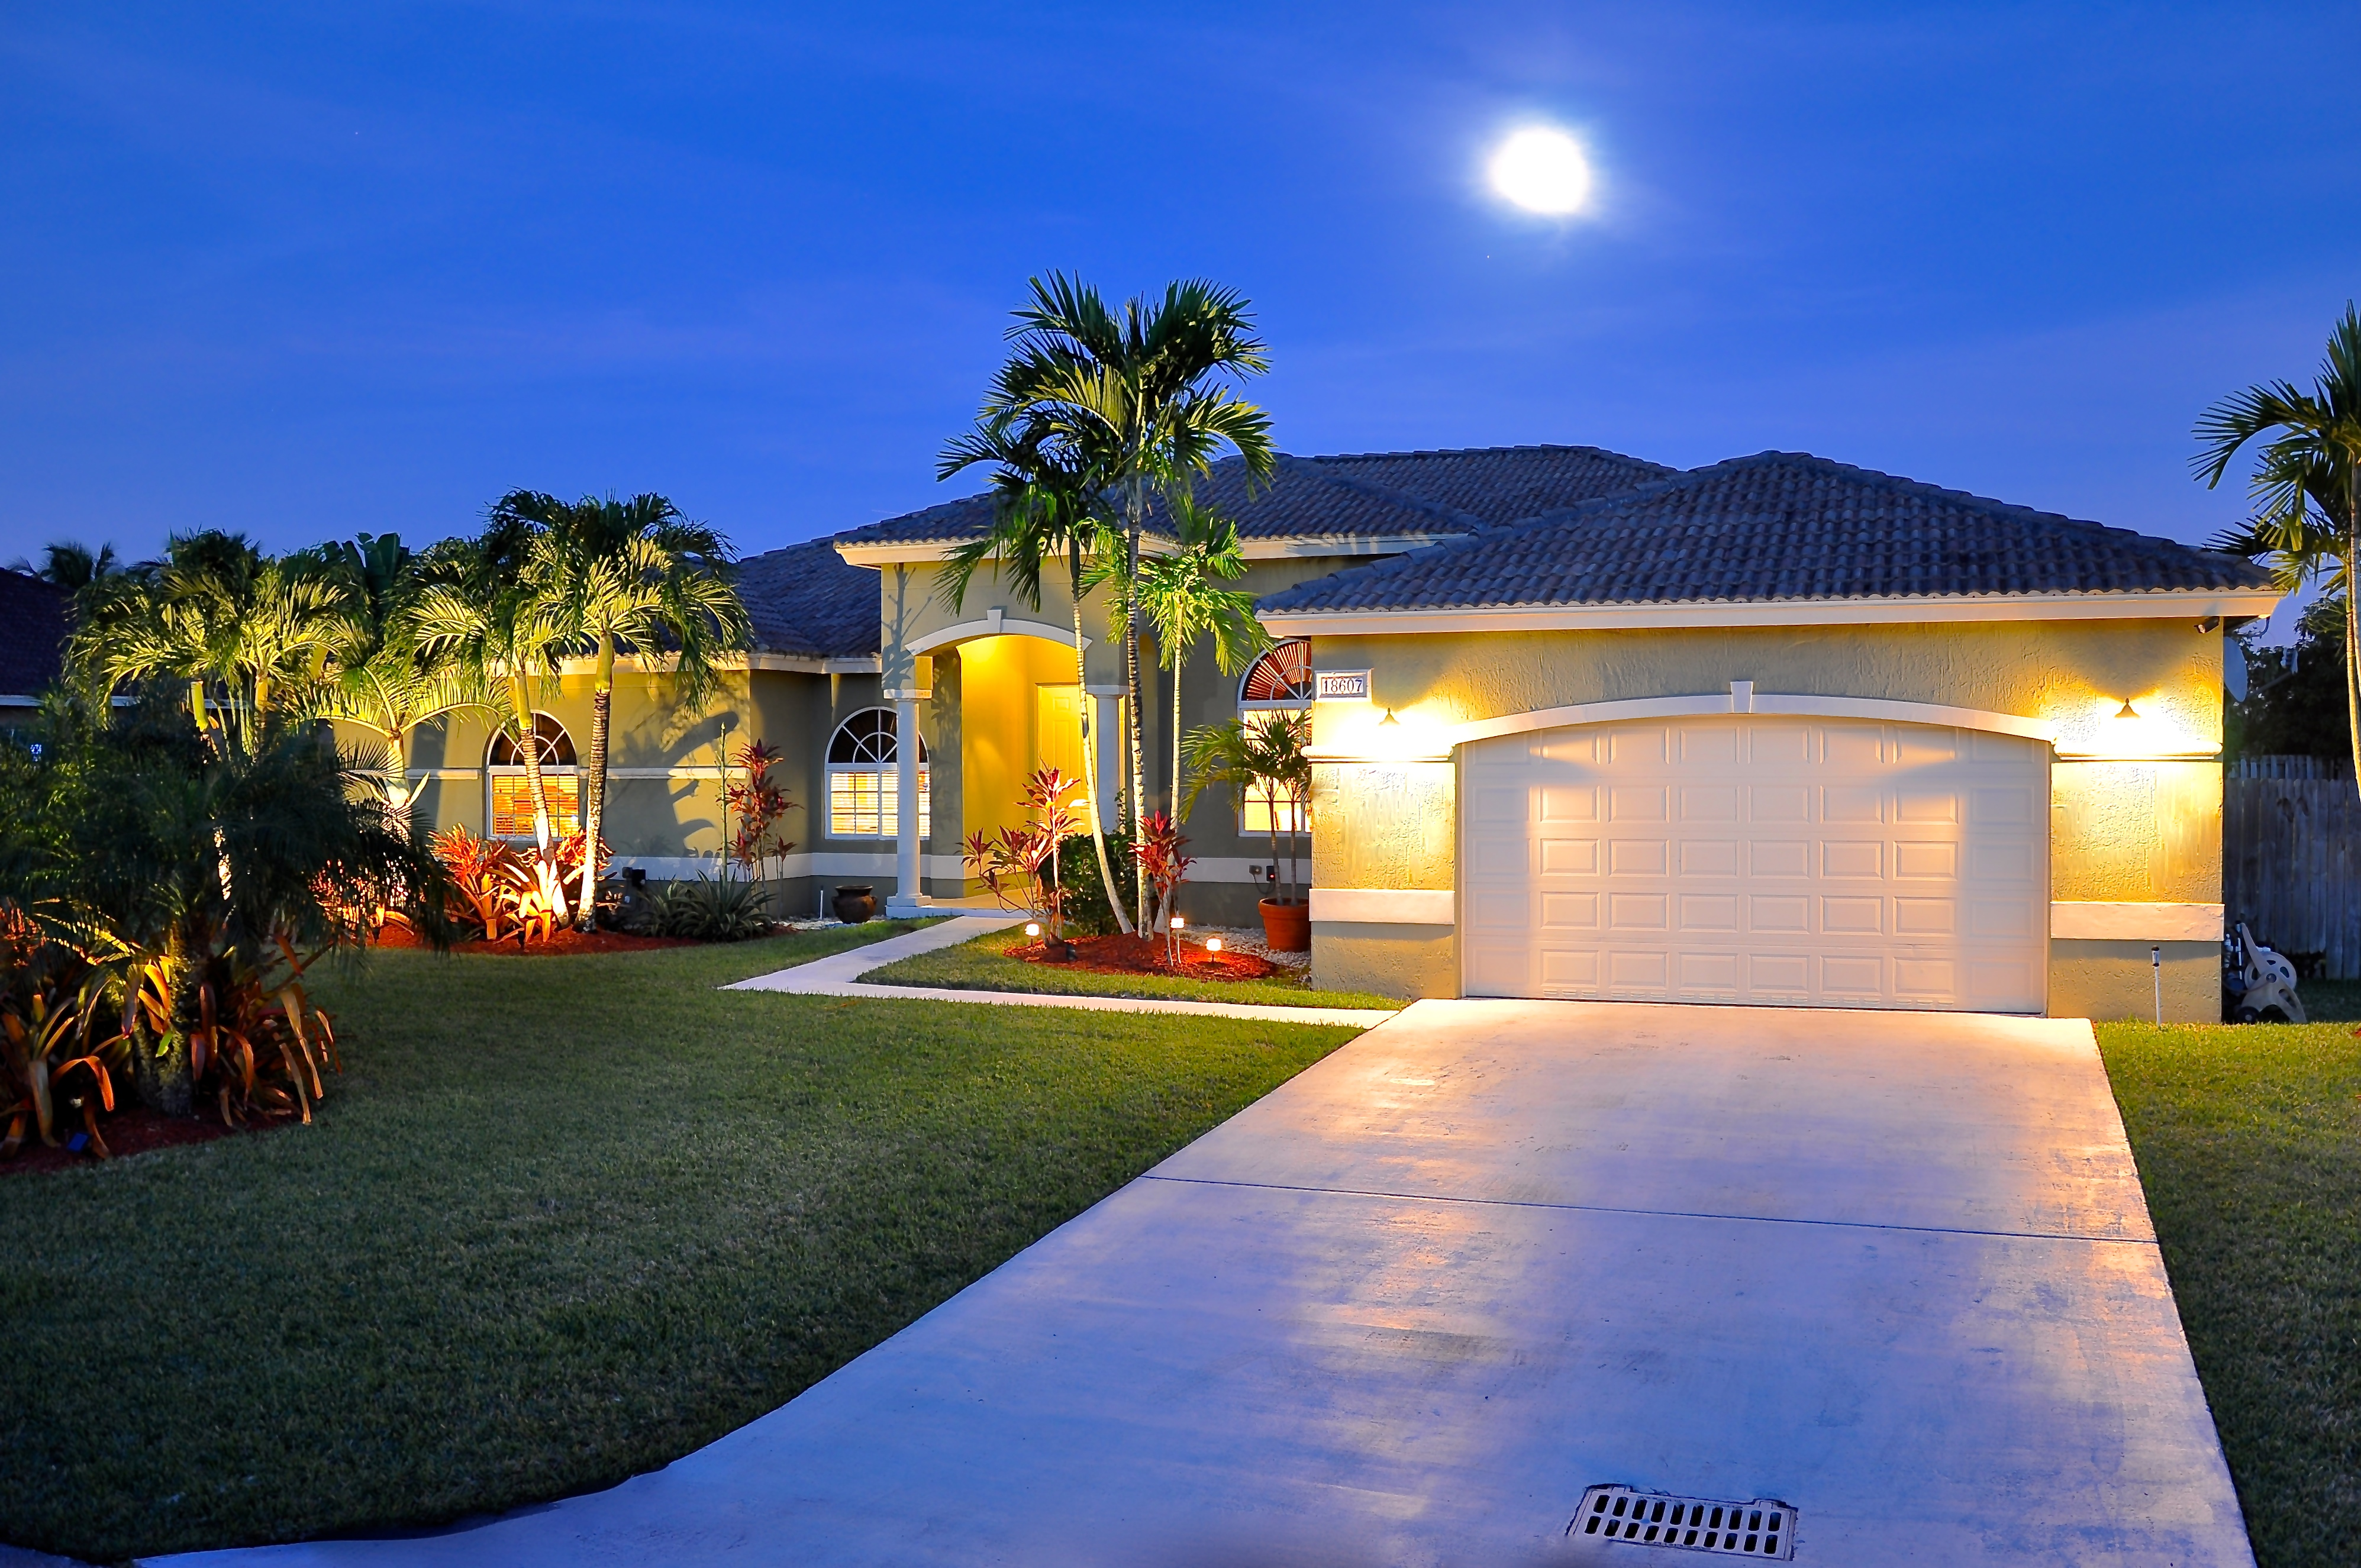 Single Family Home for Sale at 18607 Sw 132nd Pl Miami, Florida, 33177 United States